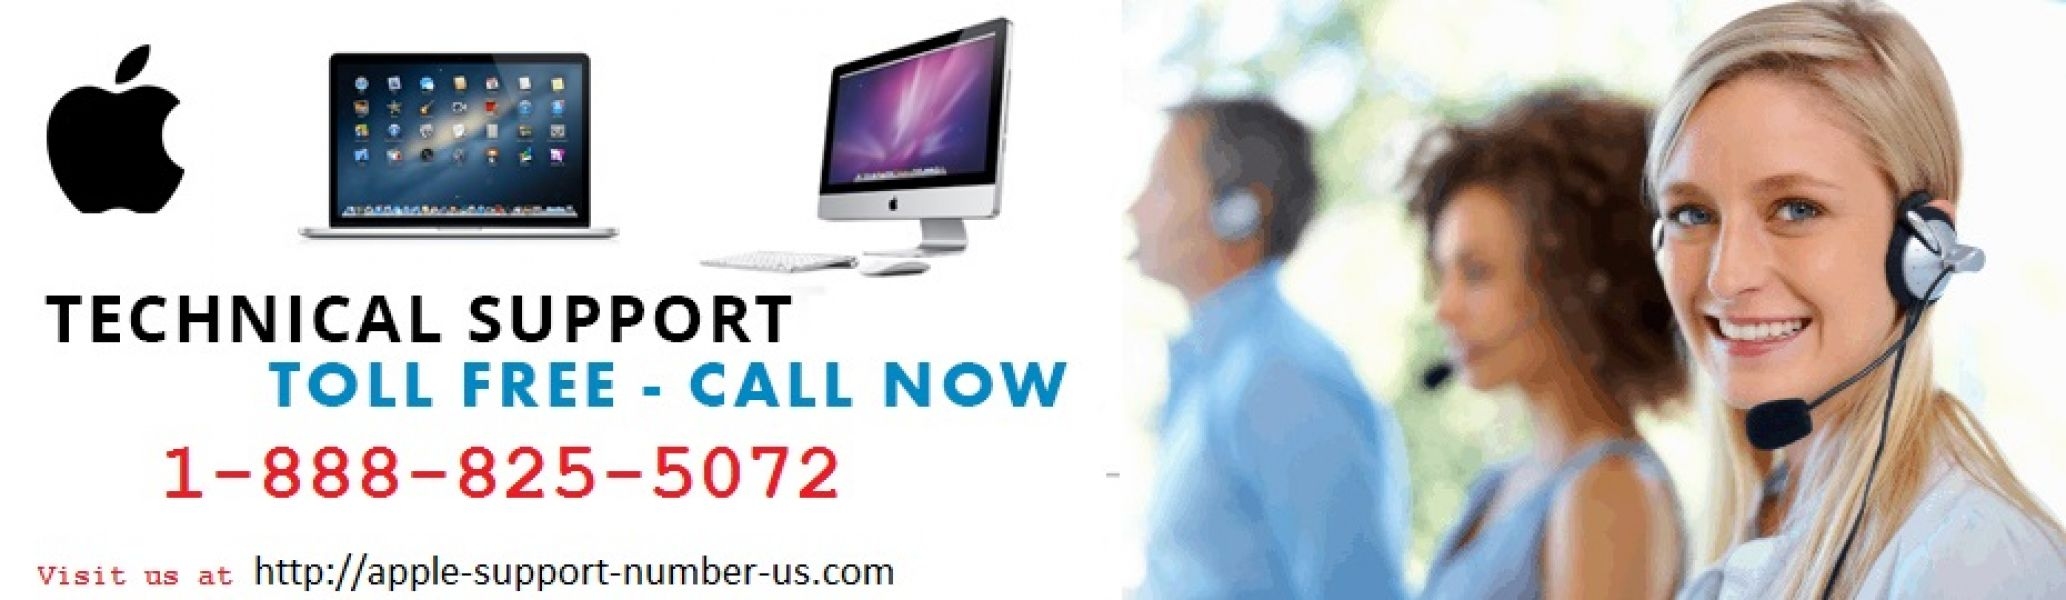 Apple Mac Support 1-888-825-5072